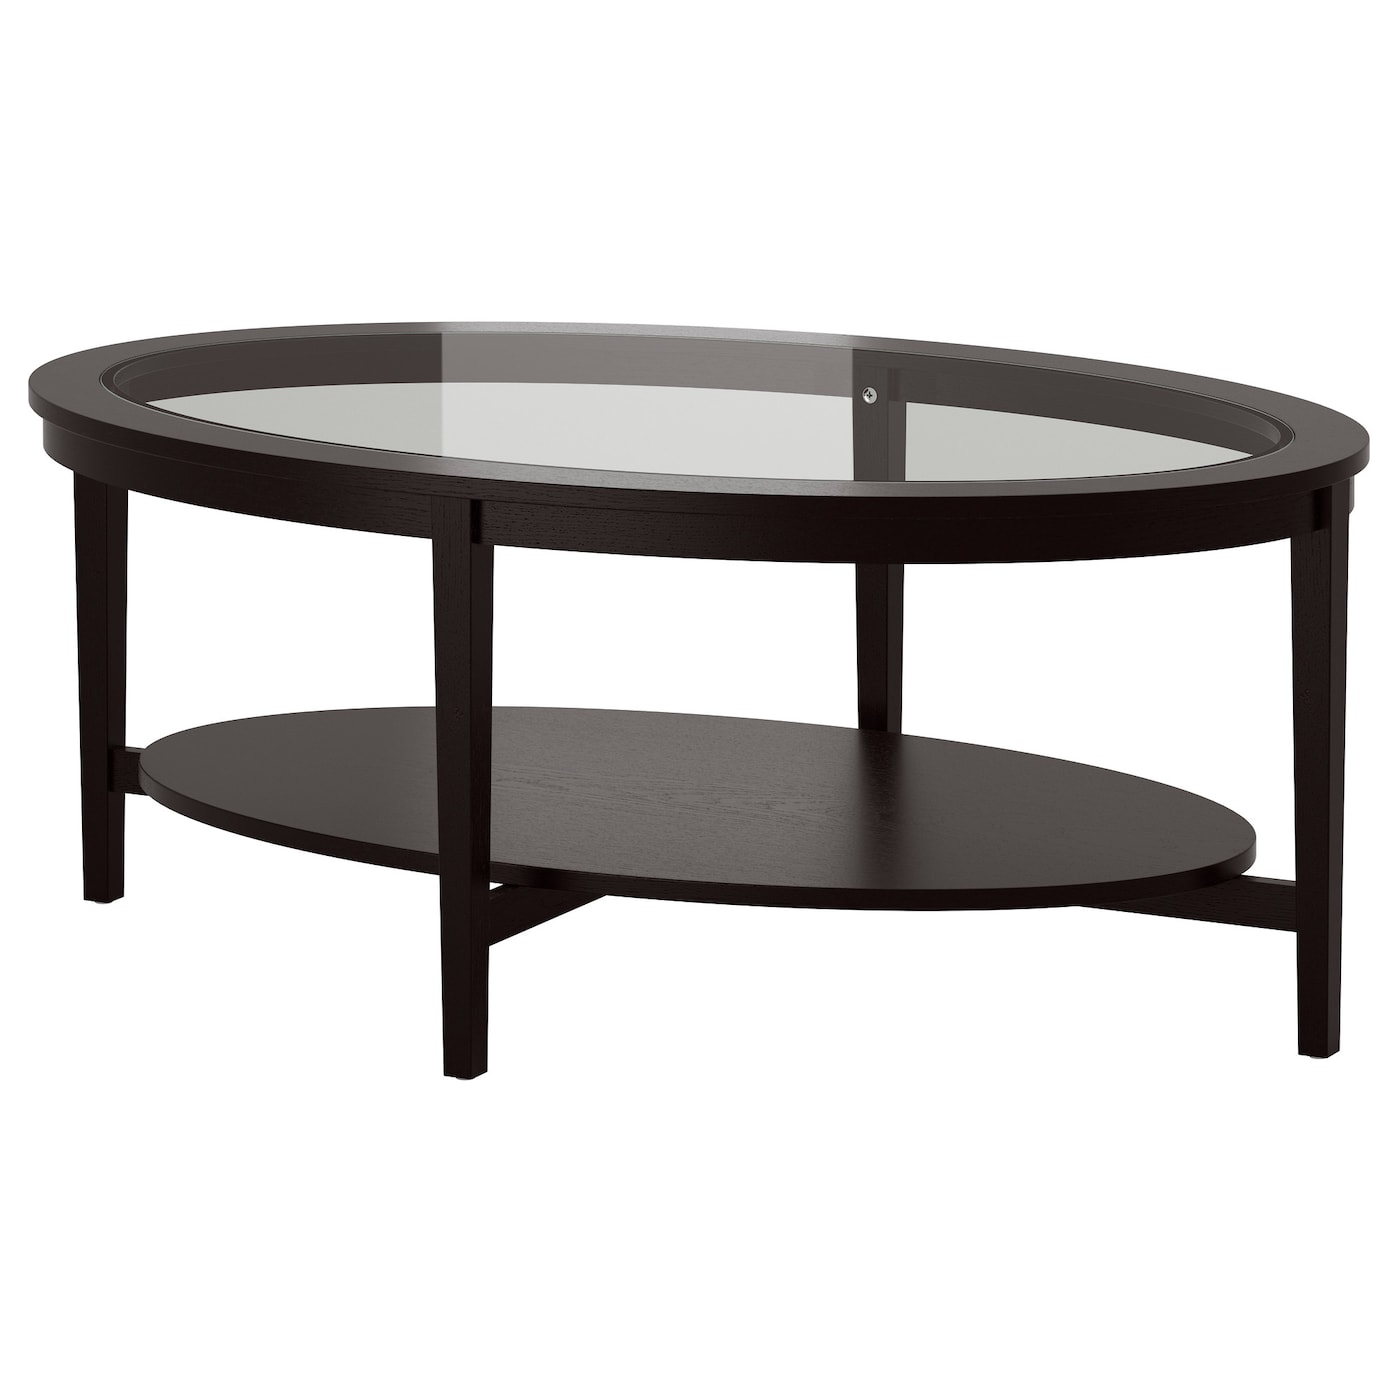 Malmsta coffee table black brown 130x80 cm ikea Black coffee table